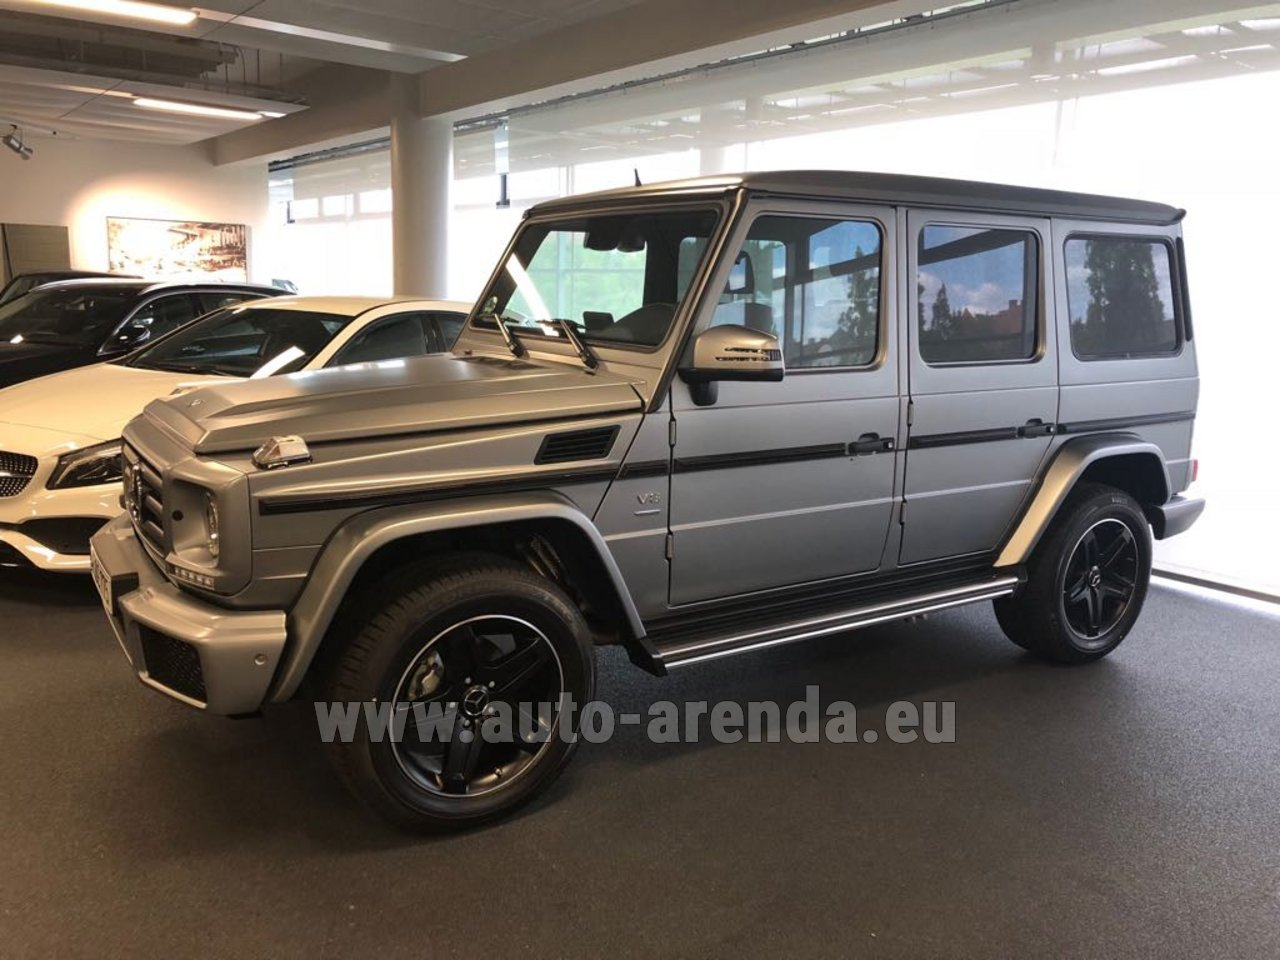 marseille mercedes g class g 500 limited edition rental. Black Bedroom Furniture Sets. Home Design Ideas